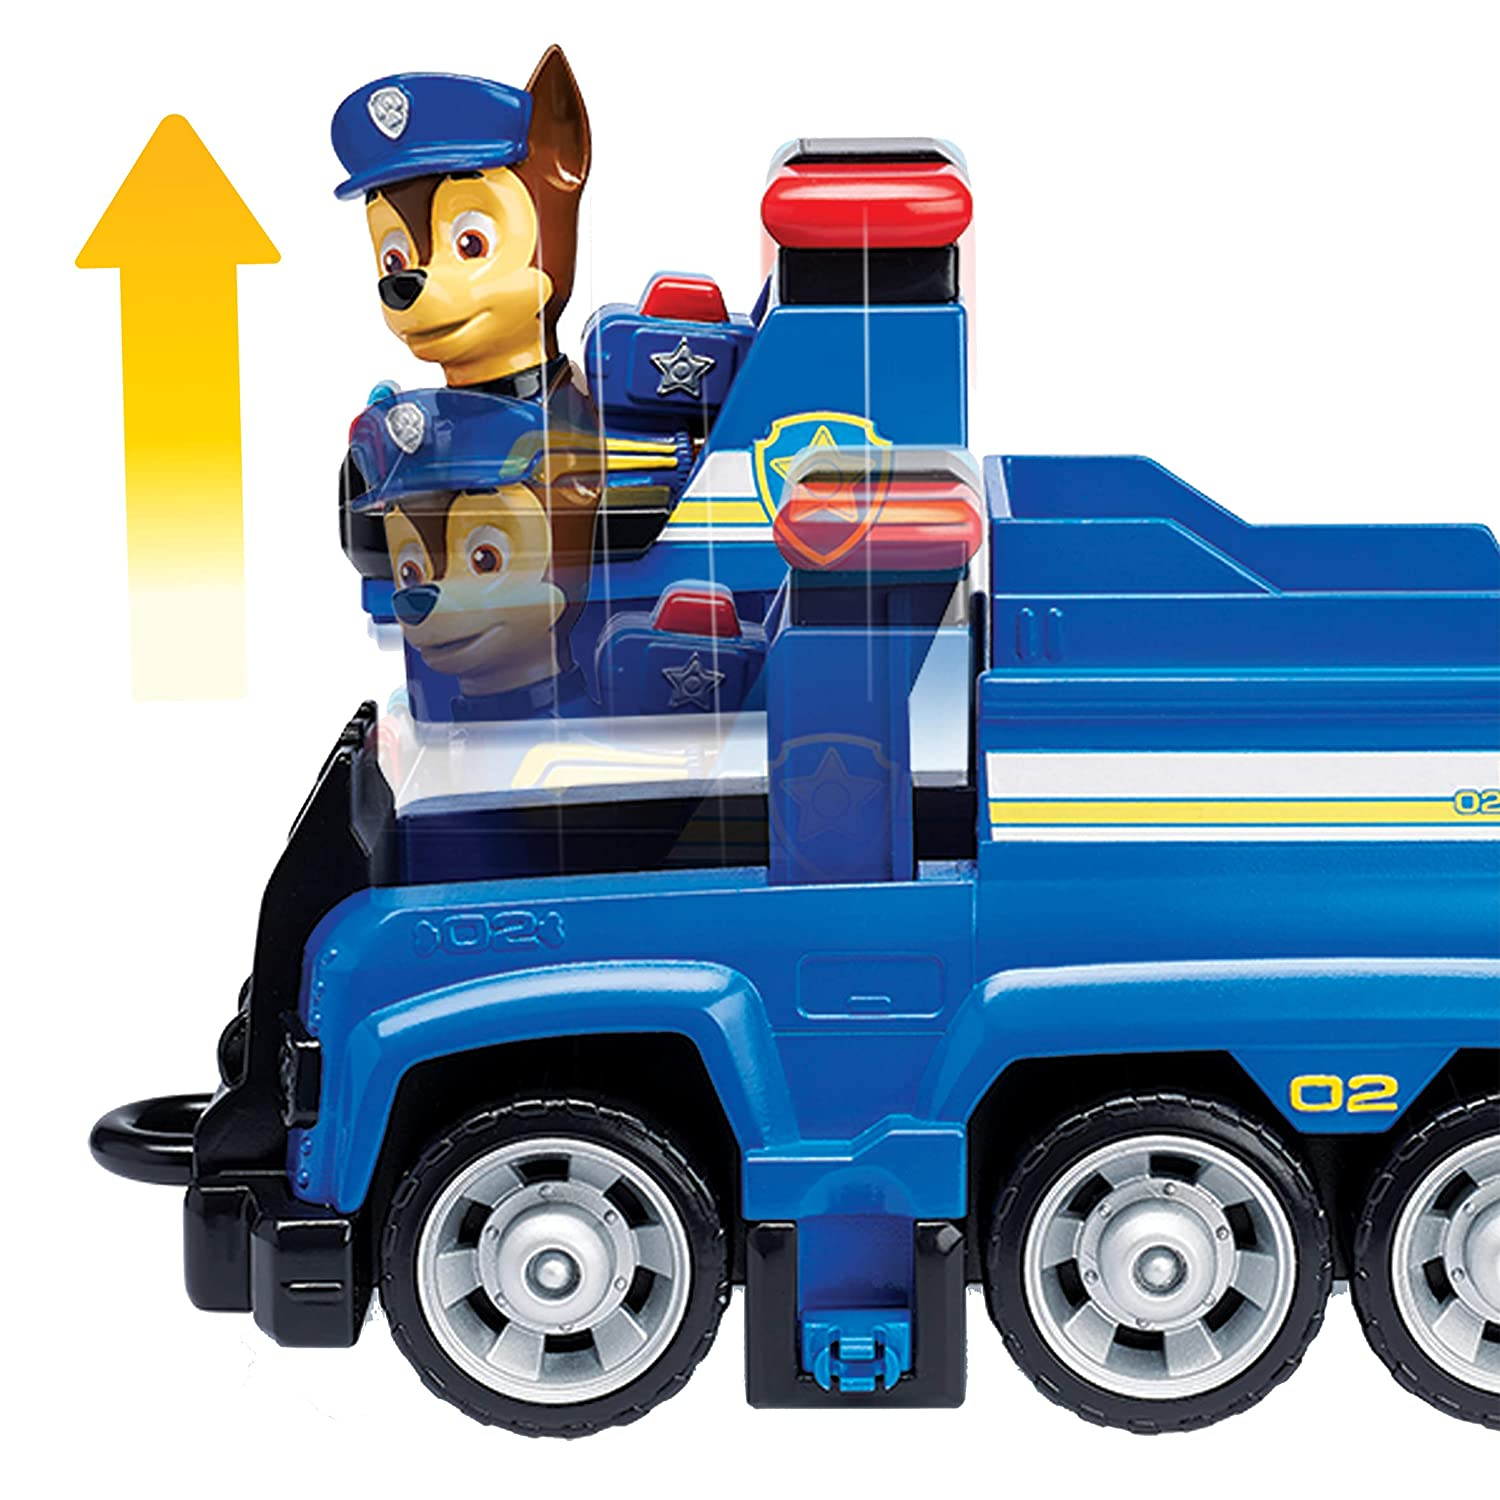 Paw Patrol 6054118 Chase?s Patrol Cruiser Vehicle With Collectible Figure 3